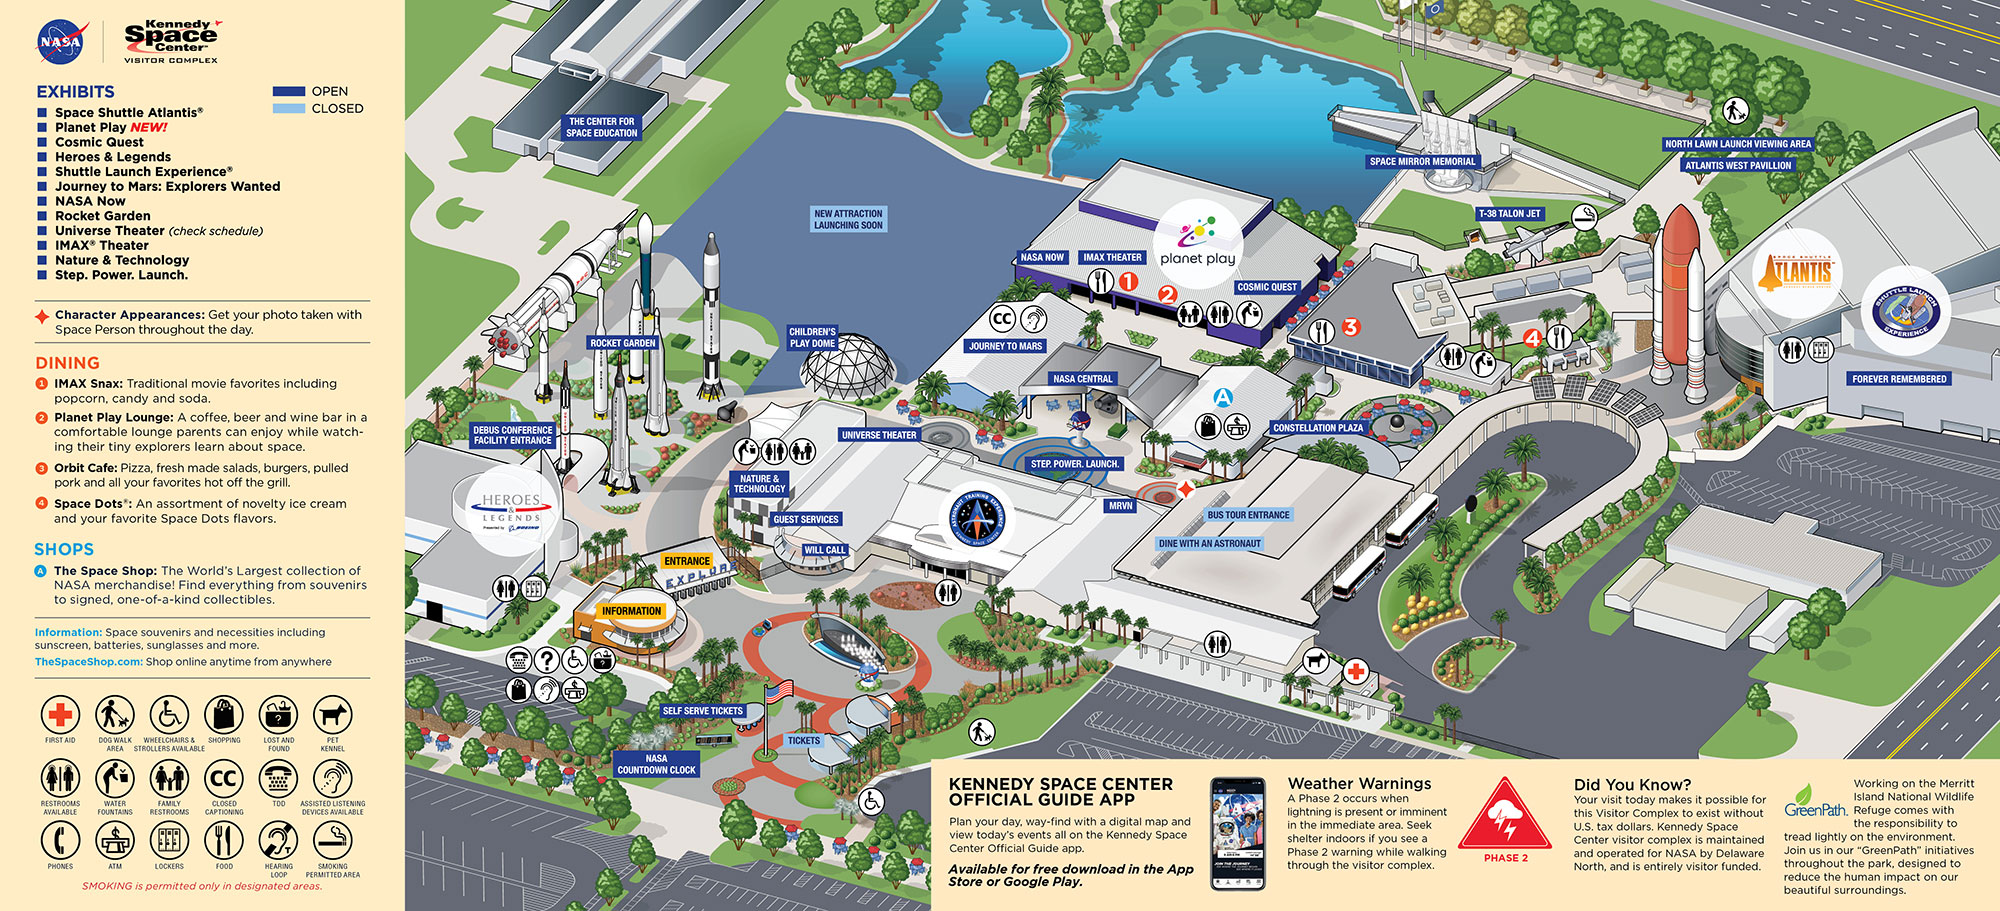 Kennedy Space Center Visitor Complex map - May 2020